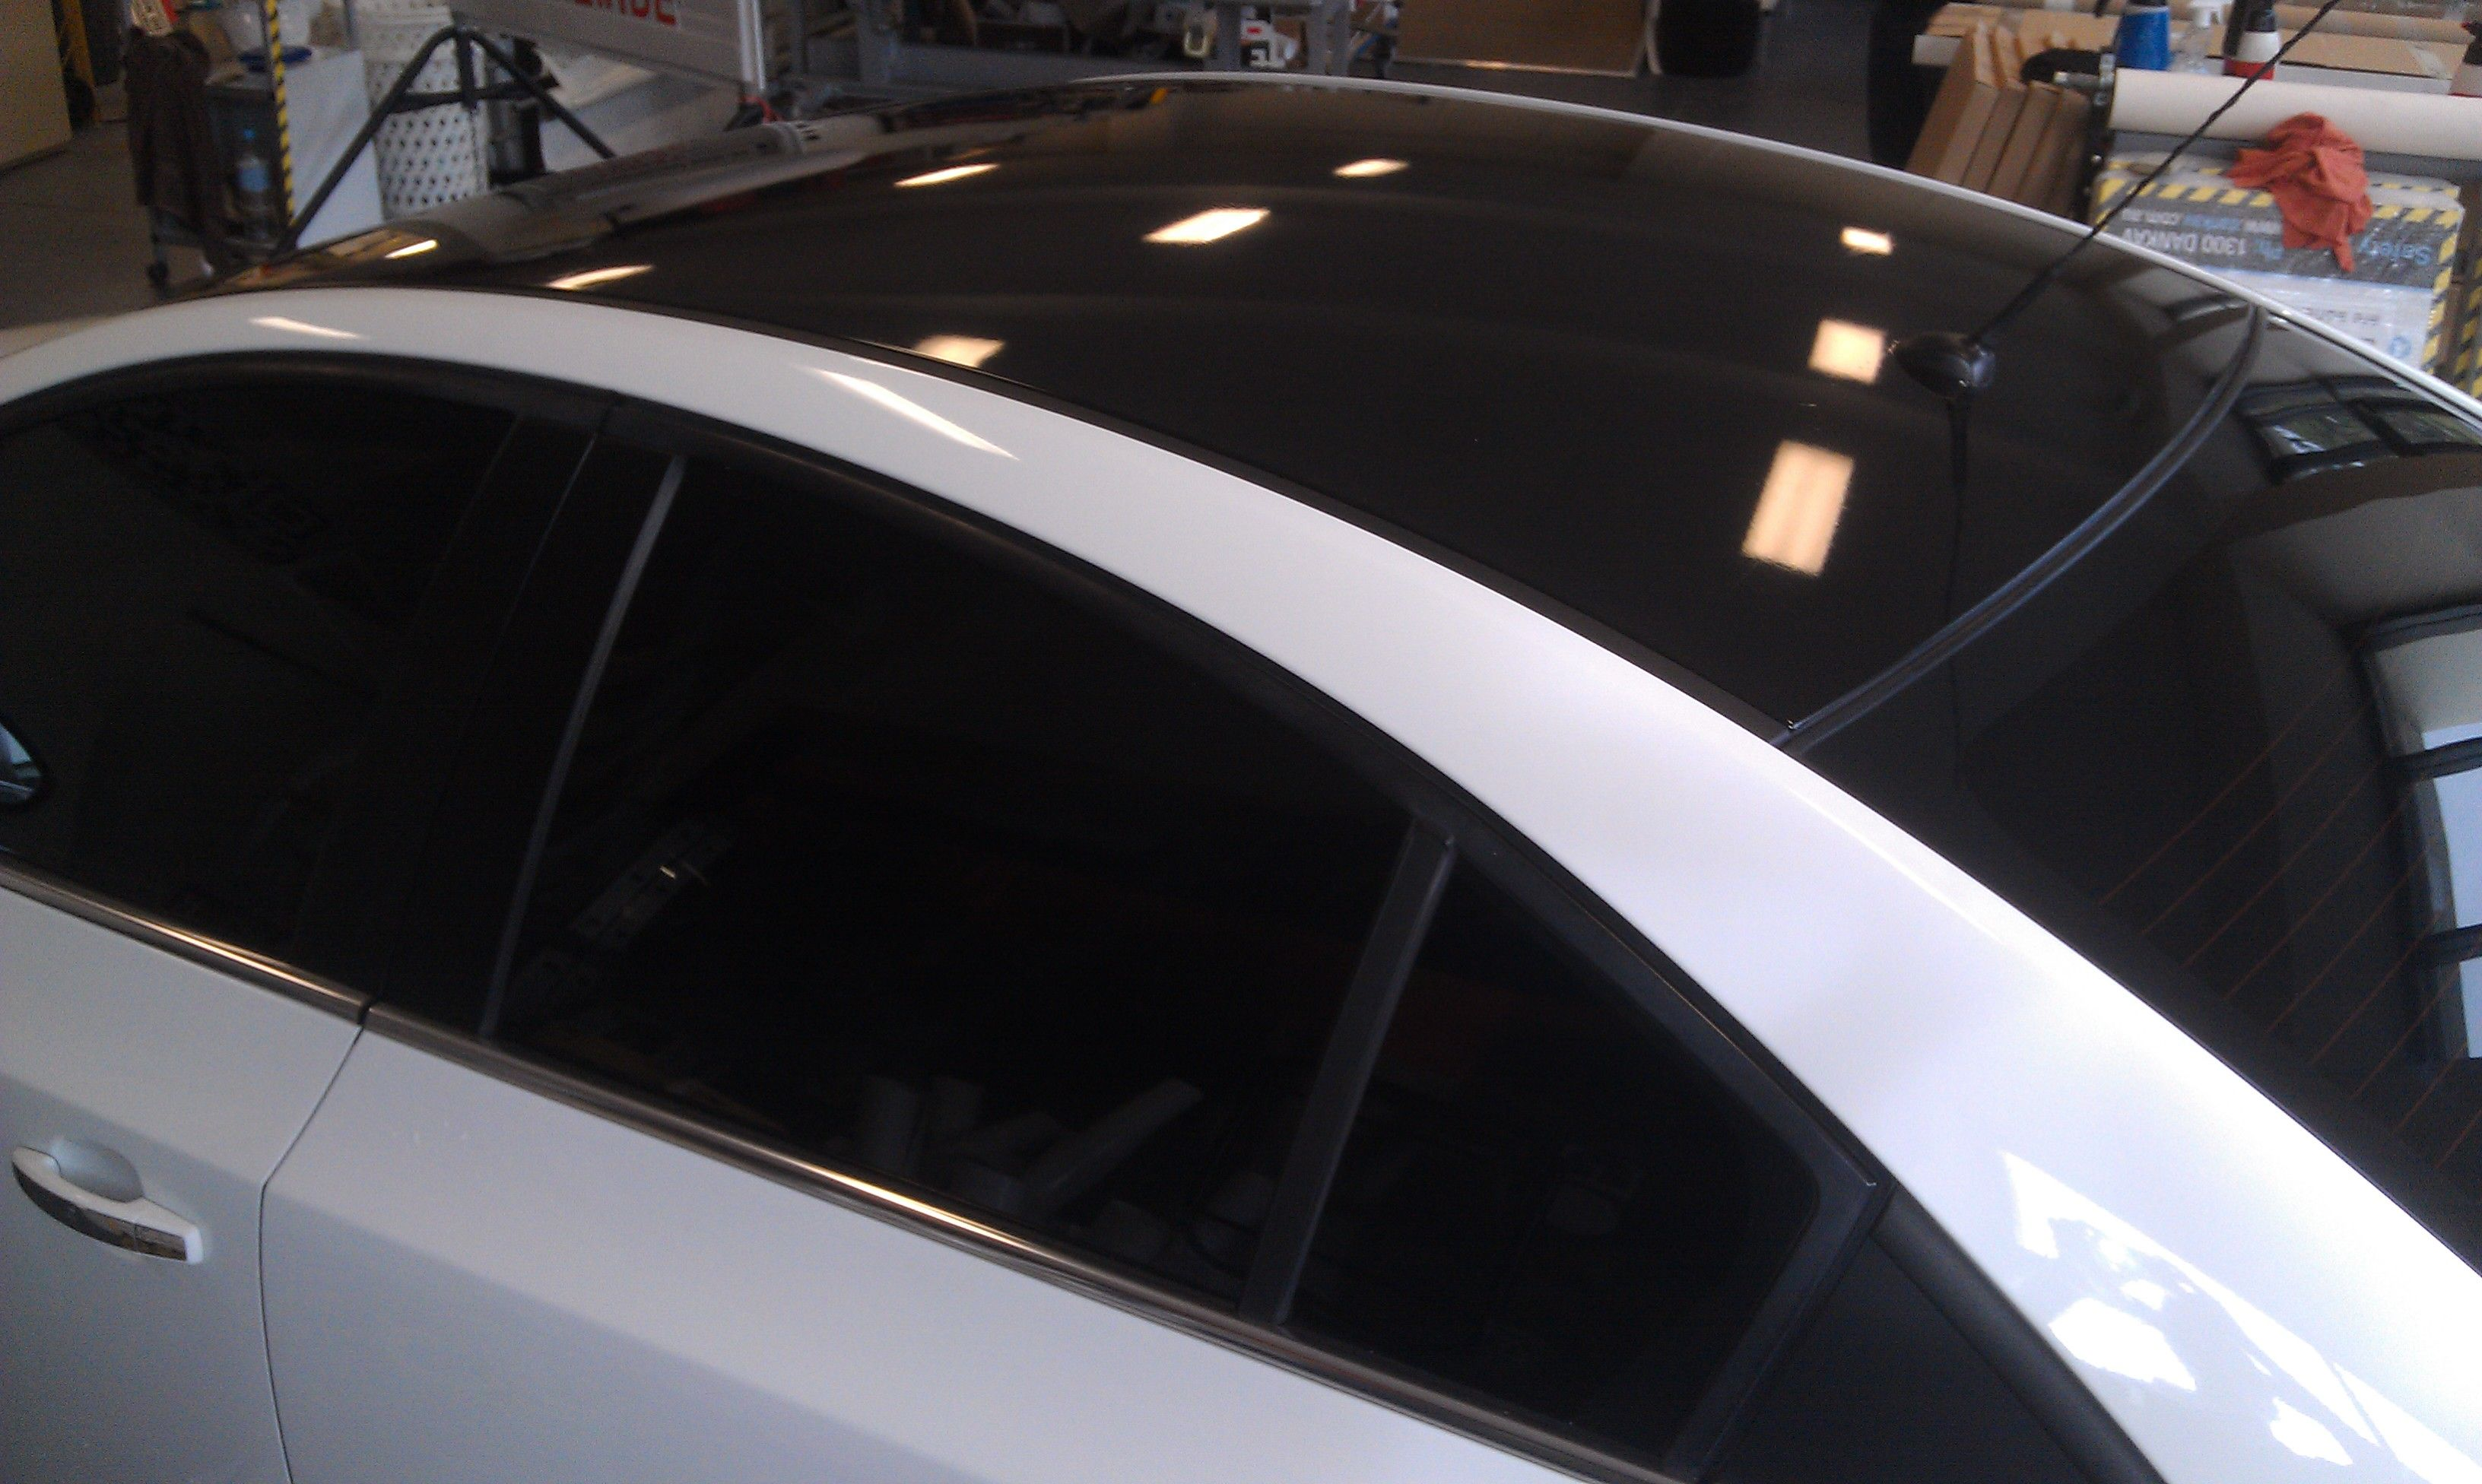 Wrapping The Roof Of Your Car To Make It Look Super Slick Black Gloss Vinyl Works A Treat Car Car Wrap Gold Coast